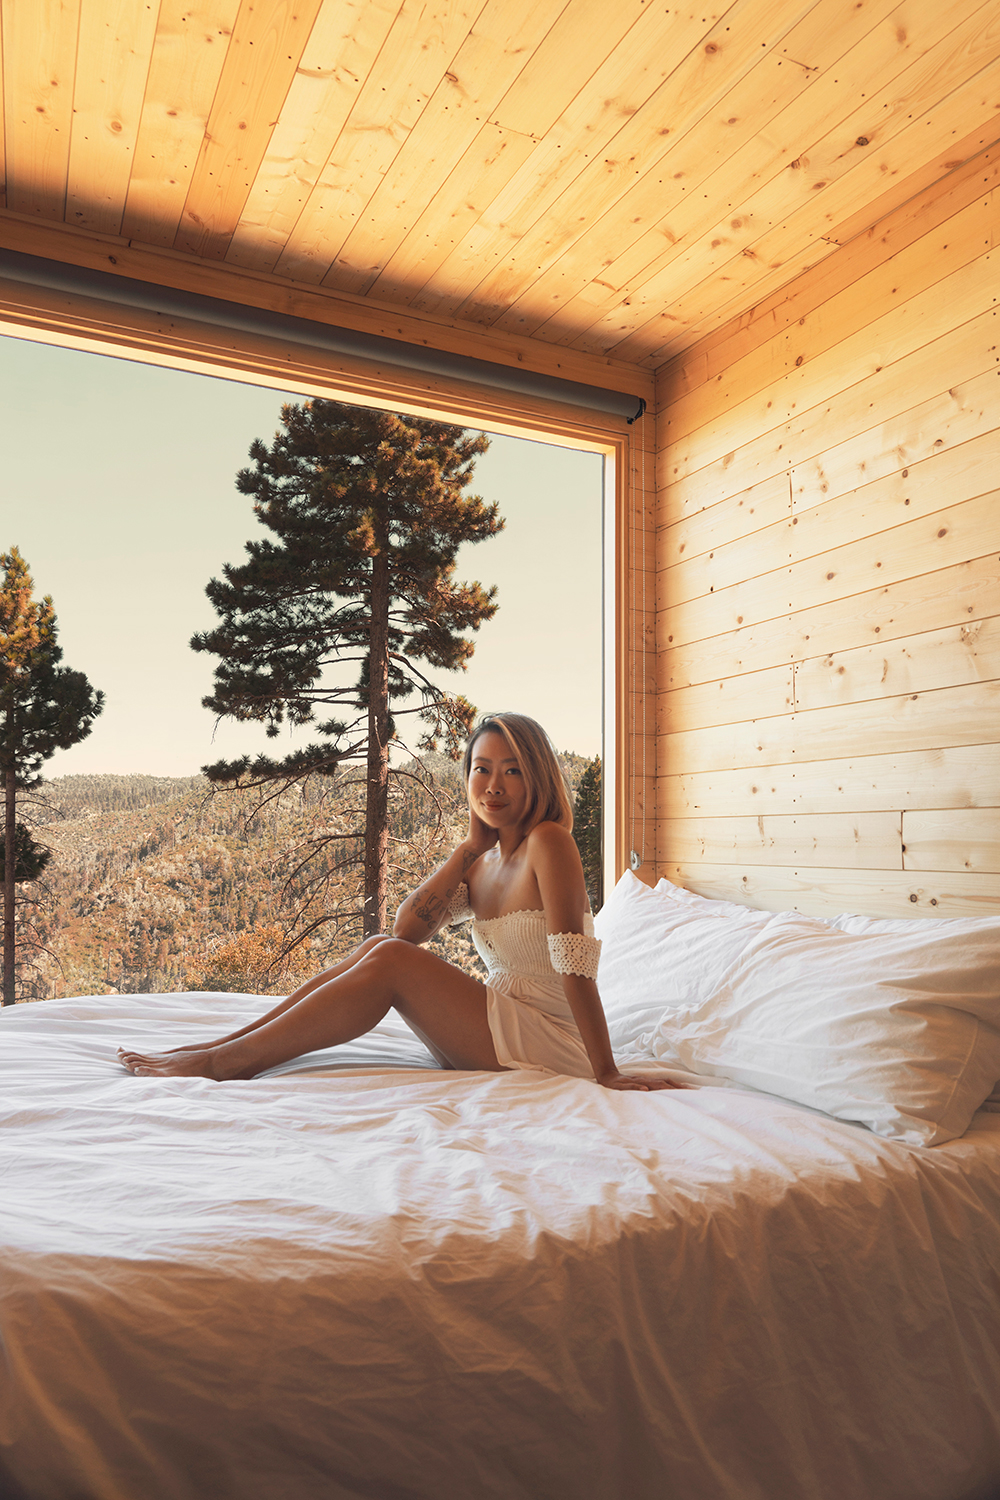 06getaway-bigbear-cabin-glamping-outdoor-cozy-travel